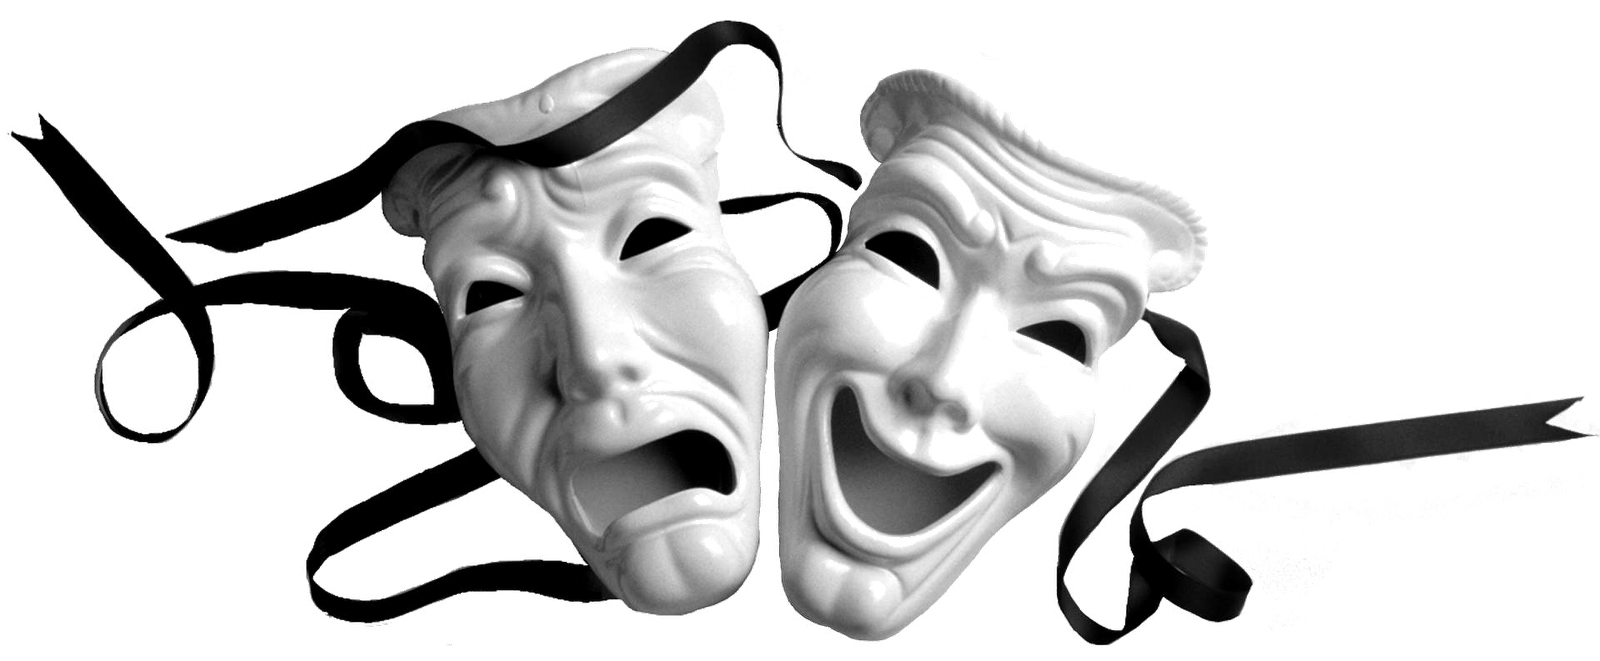 Sad And Happy Mask Wallpapers Top Free Sad And Happy Mask Backgrounds Wallpaperaccess